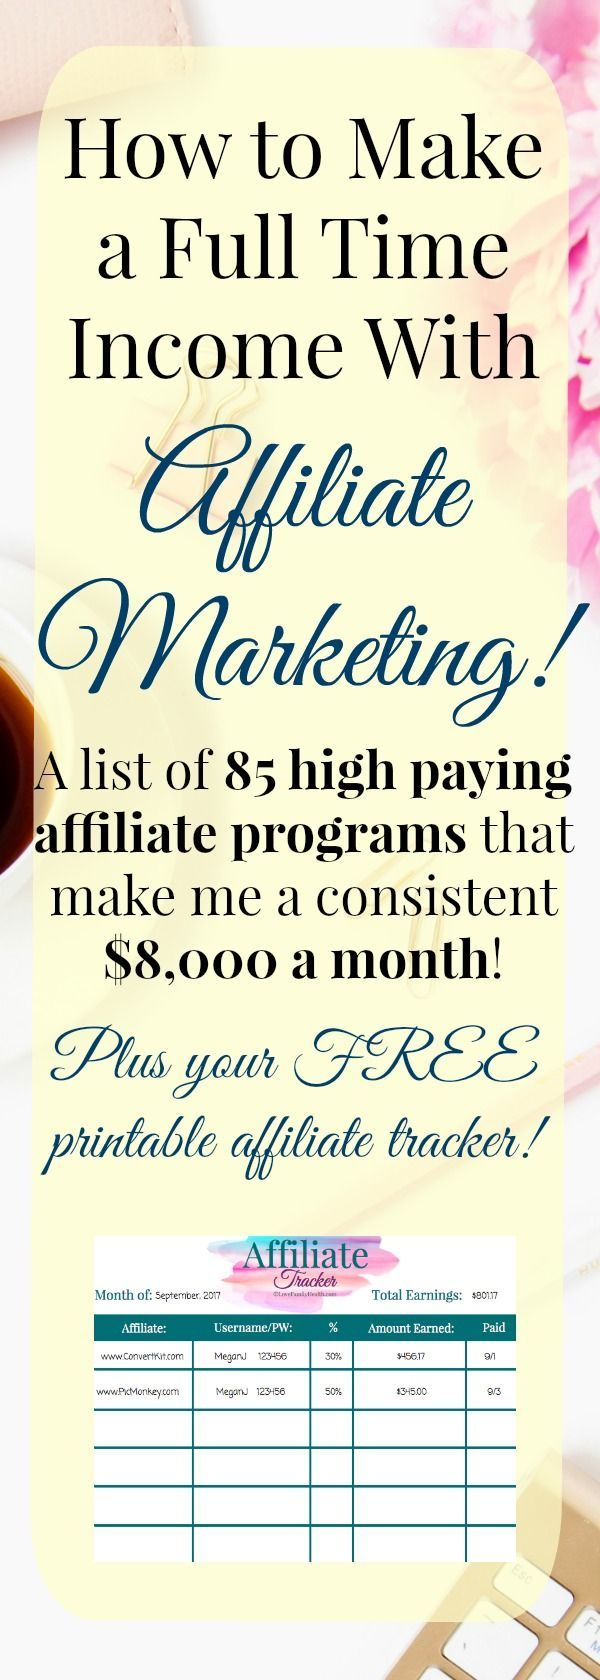 A list of 85 high paying affiliate programs that make me a consistent $8,000 a month! PLUS your FREE printable affiliate tracker!